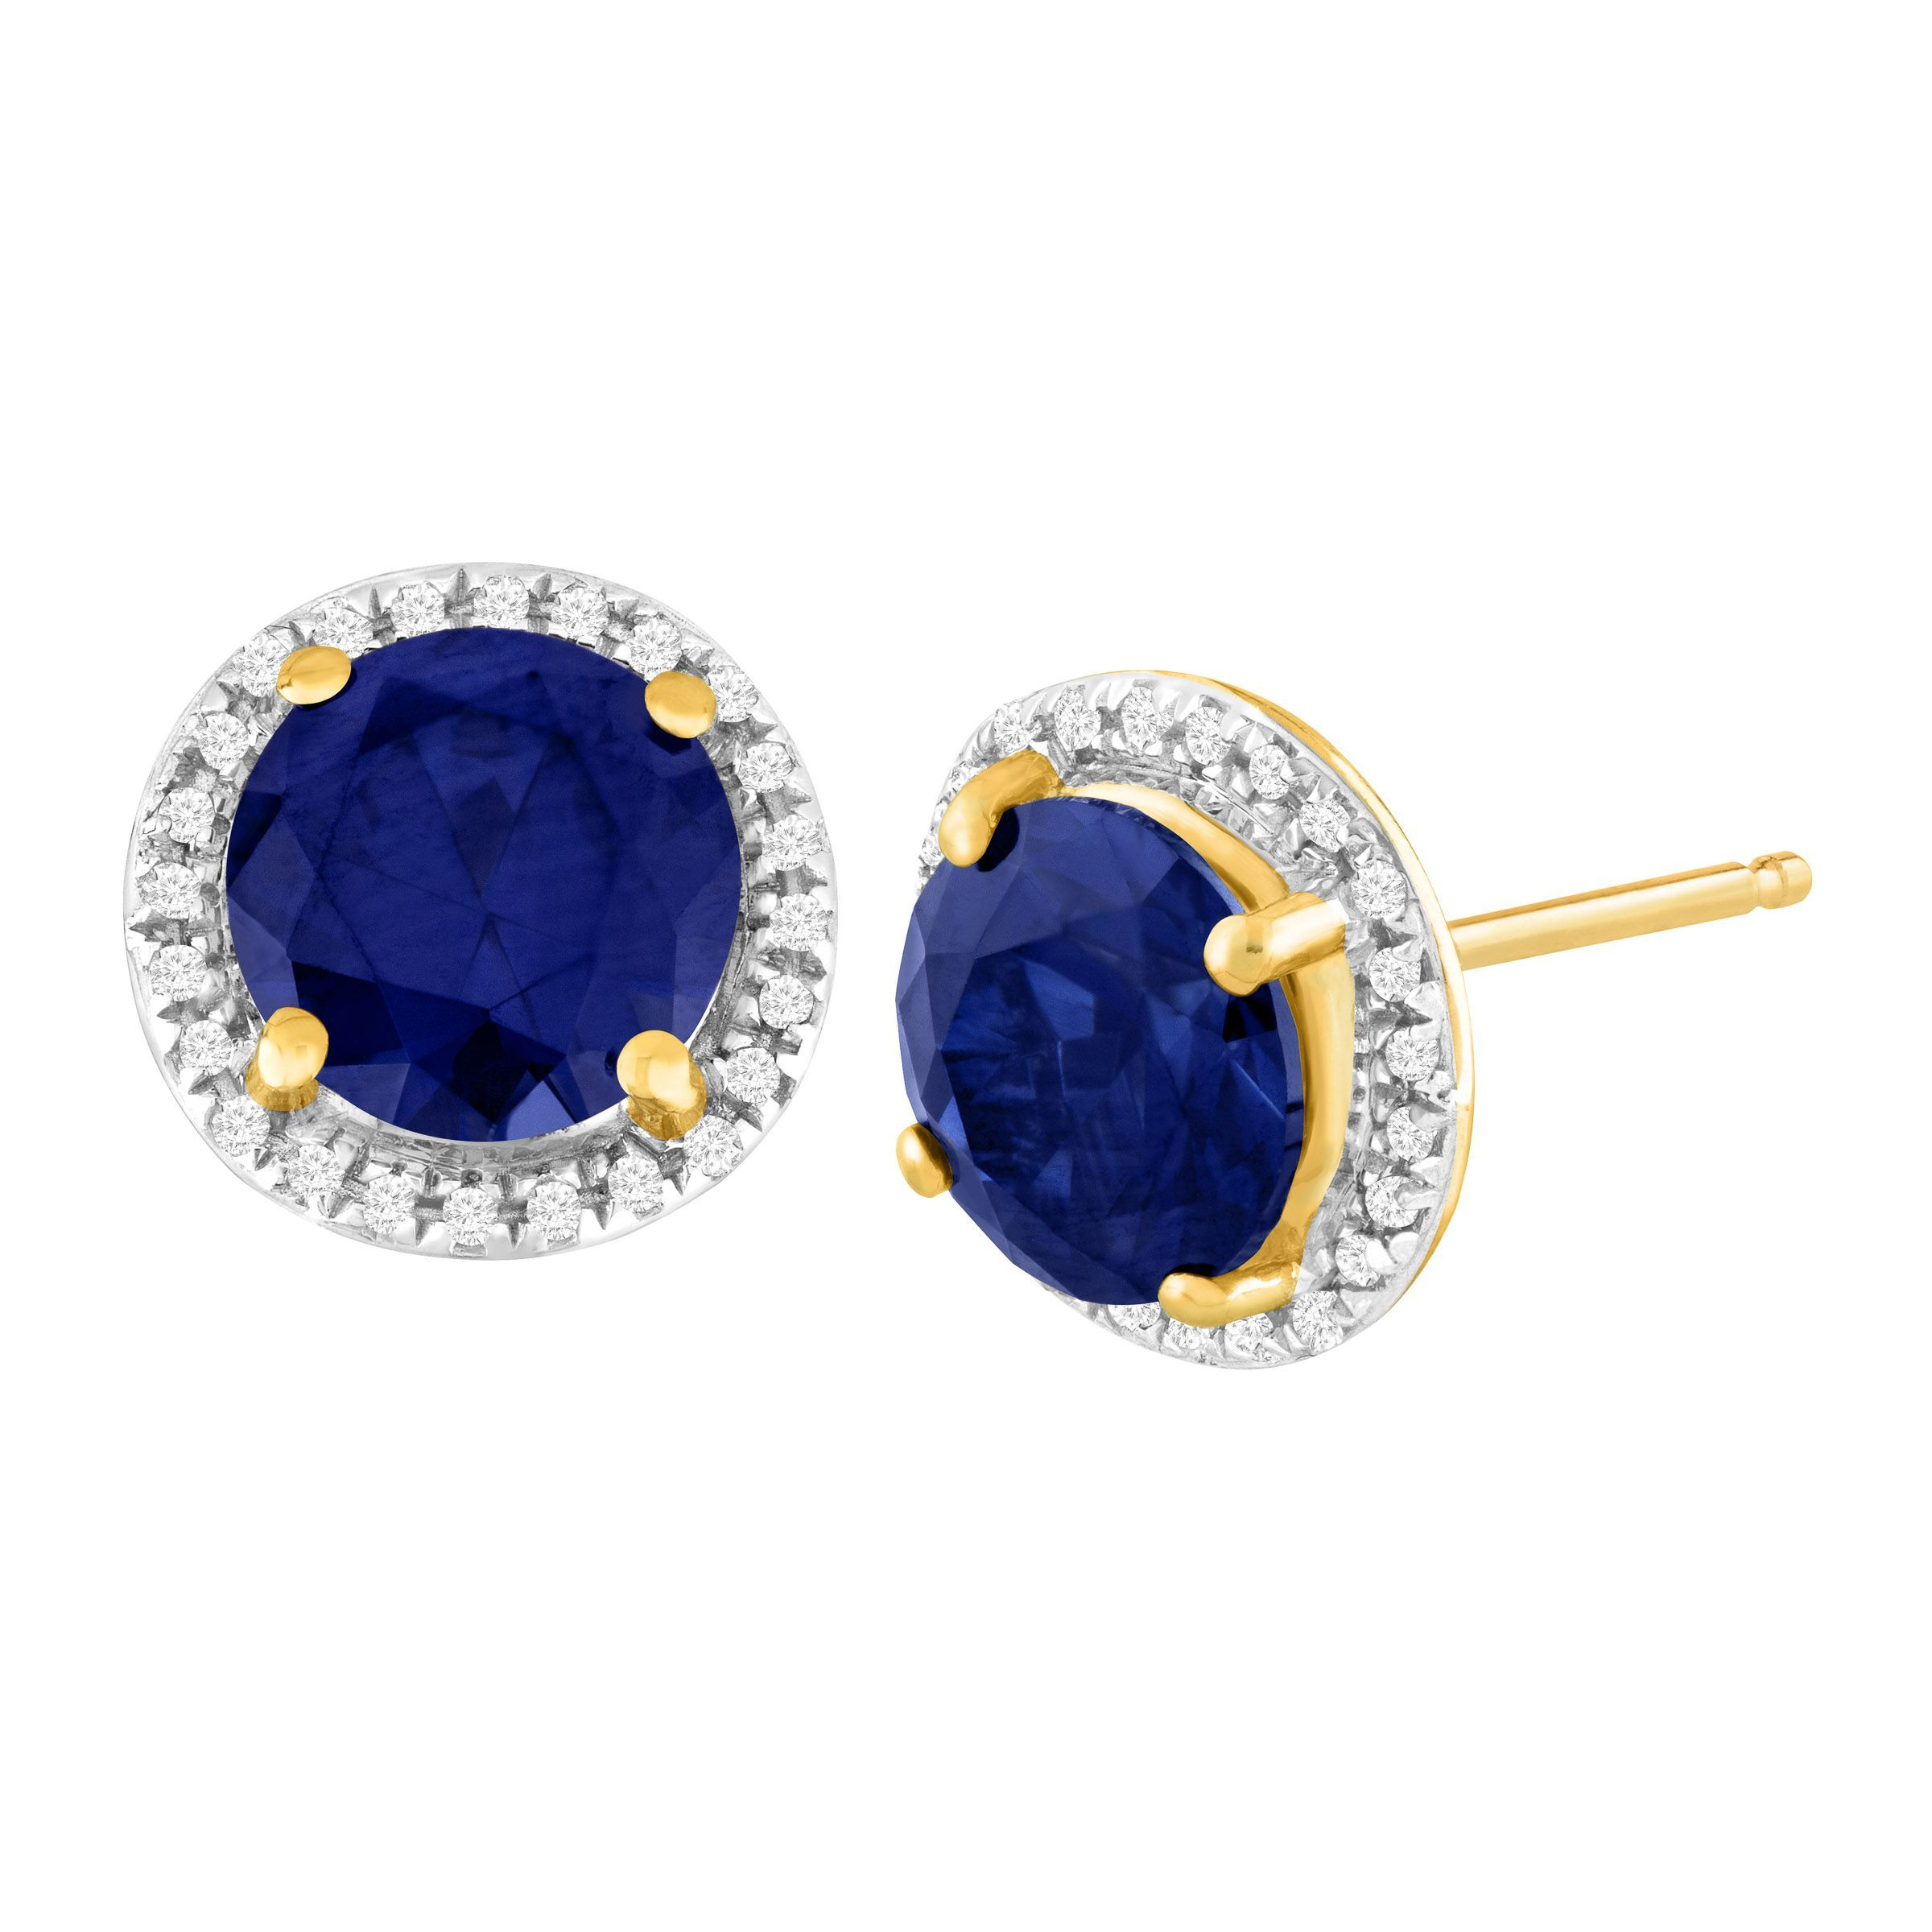 christopher sapphire cabochon sydney william gemstone jewellery